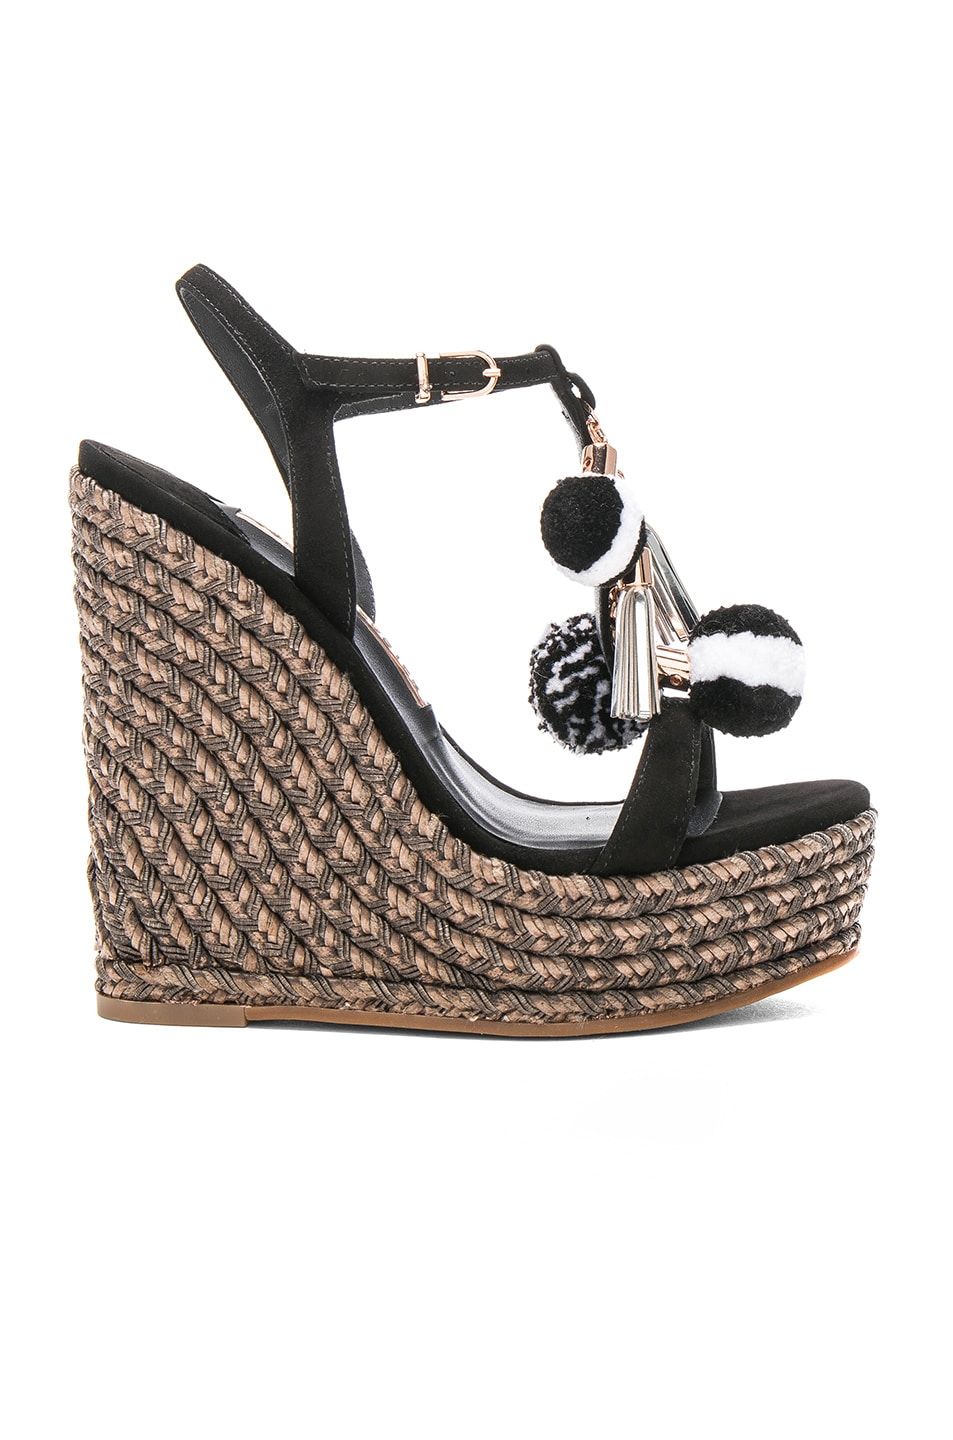 Image 1 of Sophia Webster Suede Lucita Pom Pom Wedges in Cookies & Cream